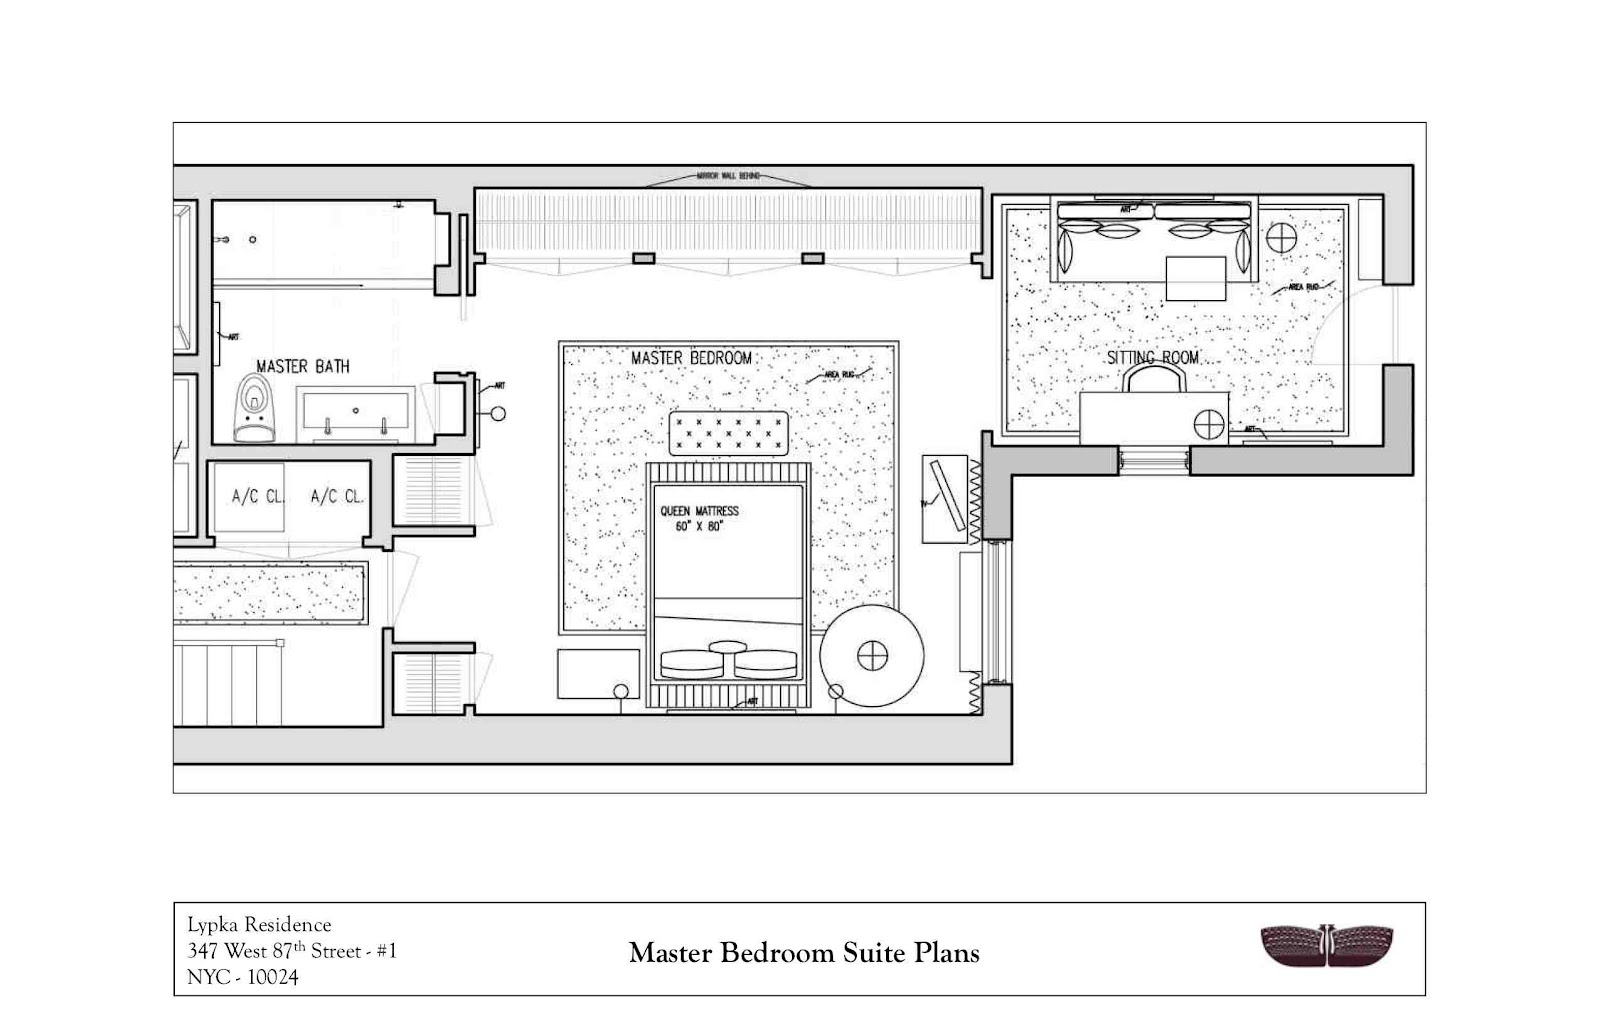 master suite layout images amp pictures becuo master bedroom design bedroom layout chalkoneup co